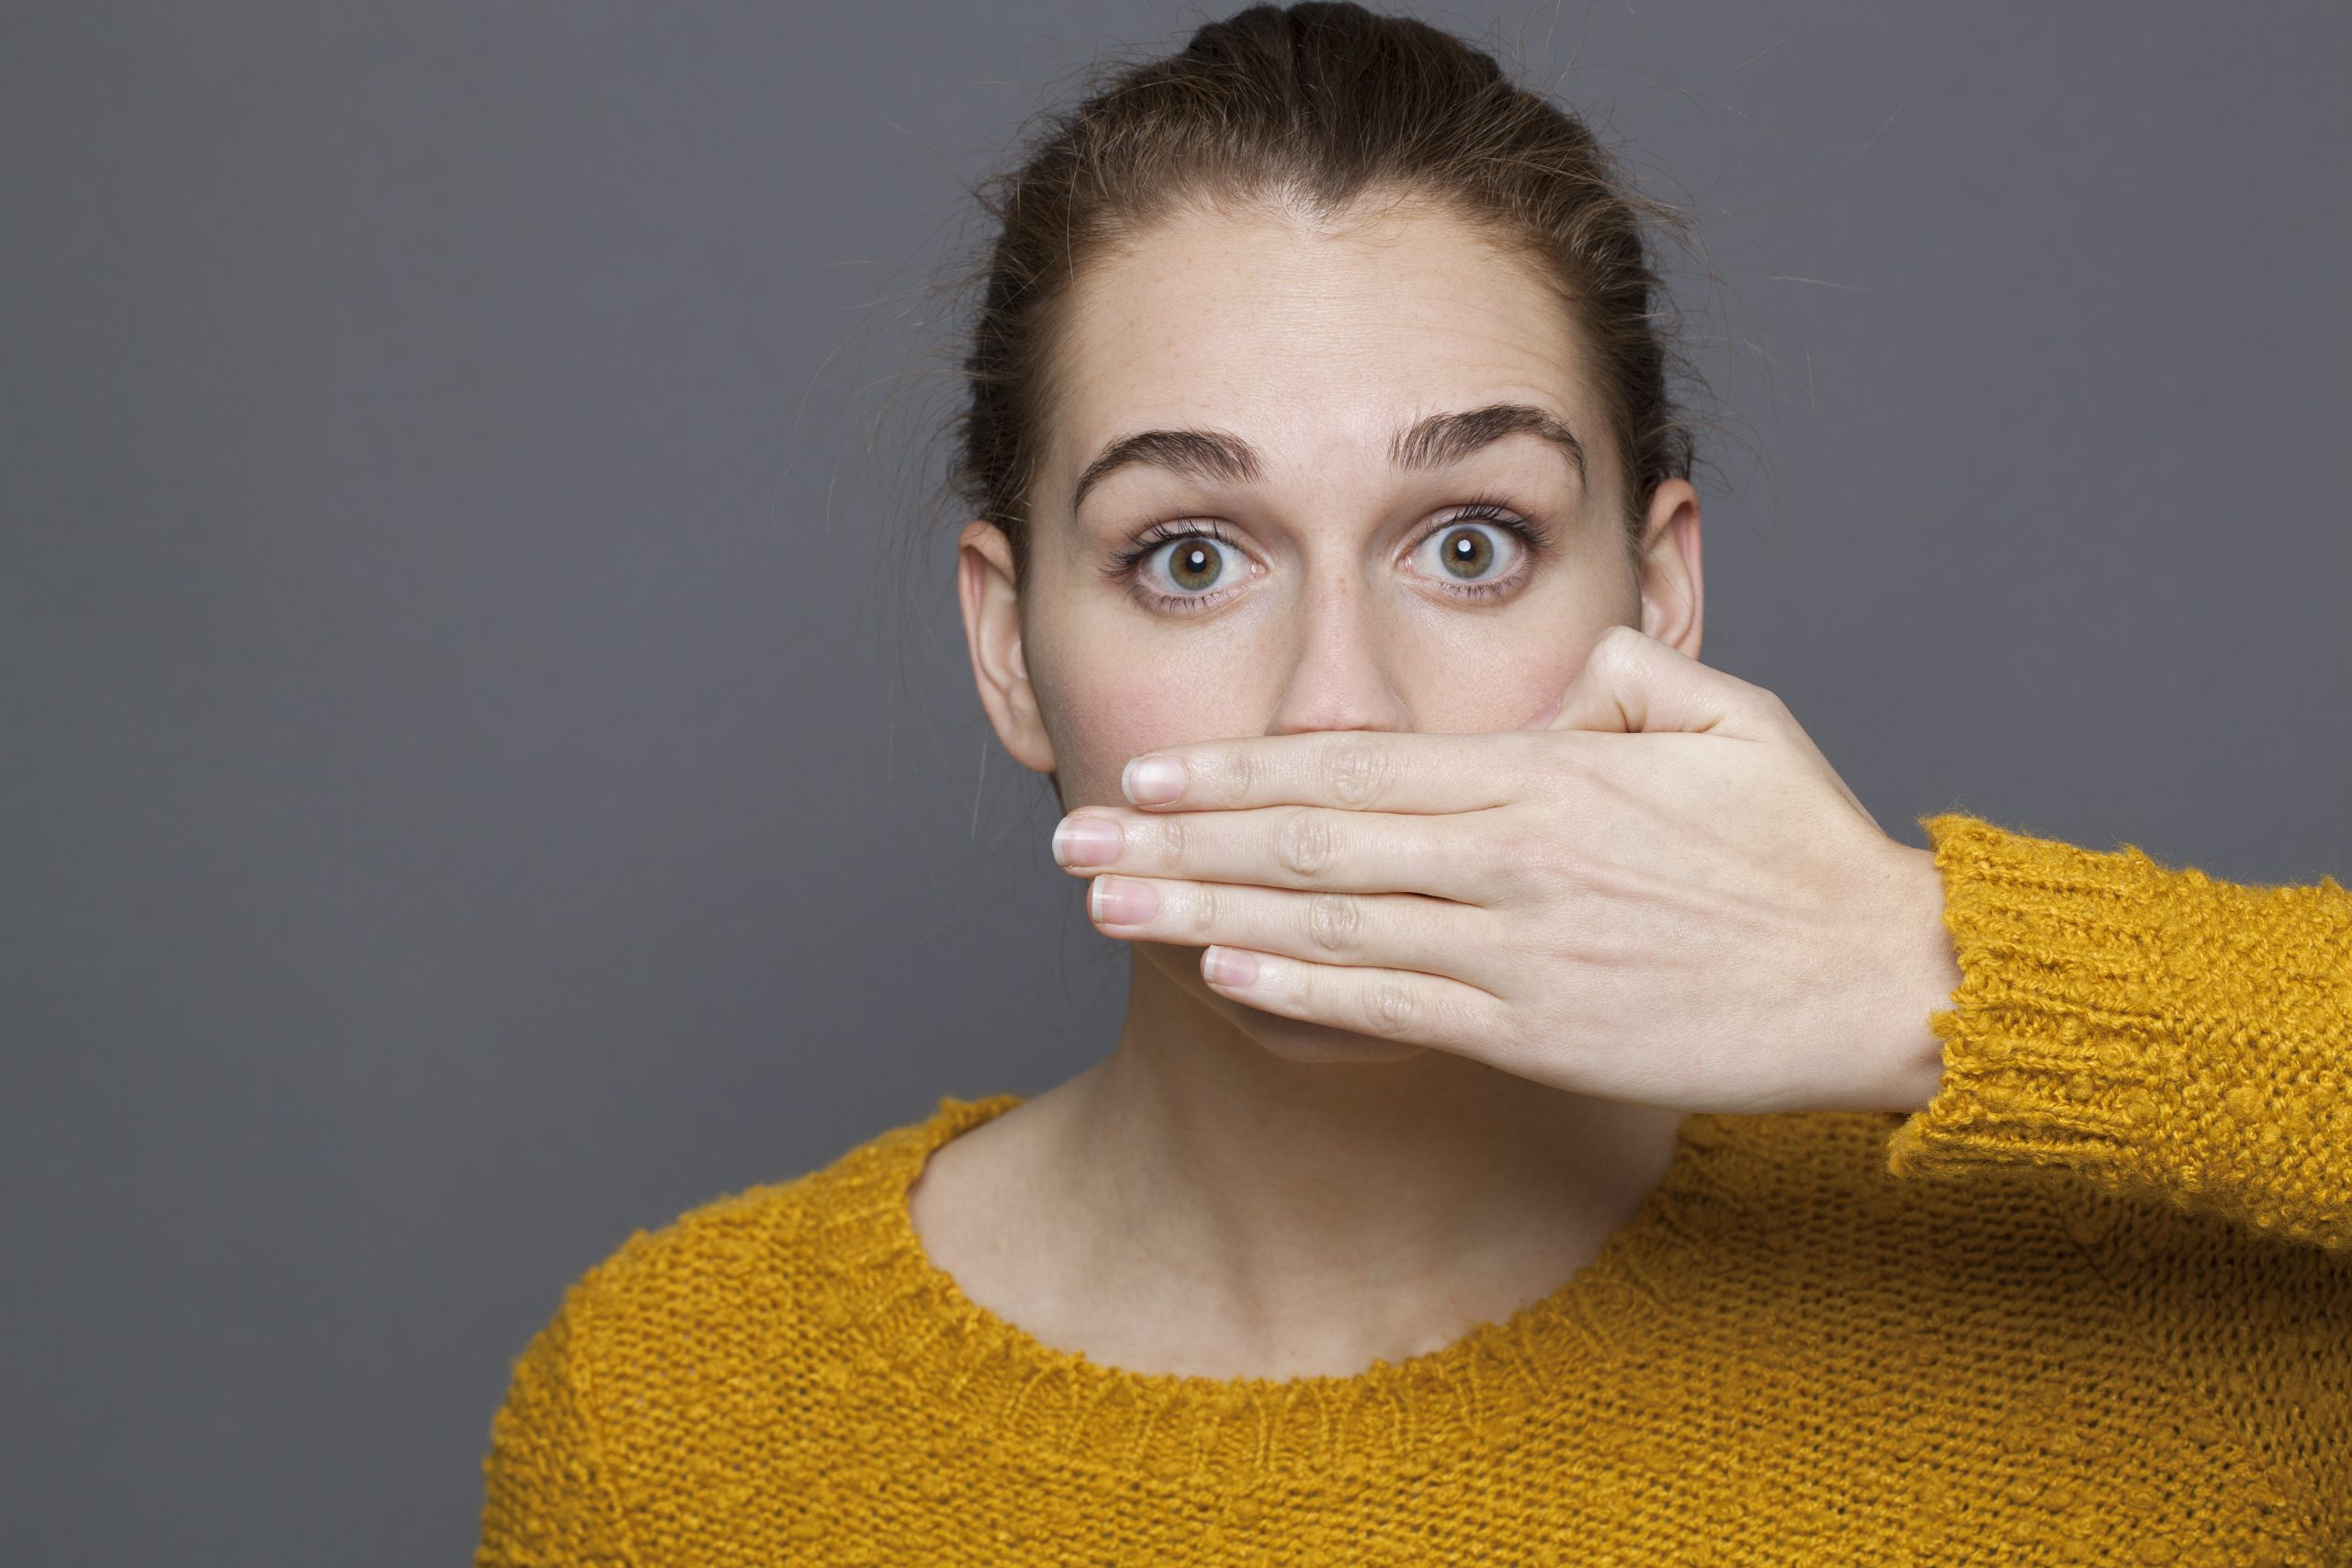 Gum disease causes woman to cover her mouth with her hand.